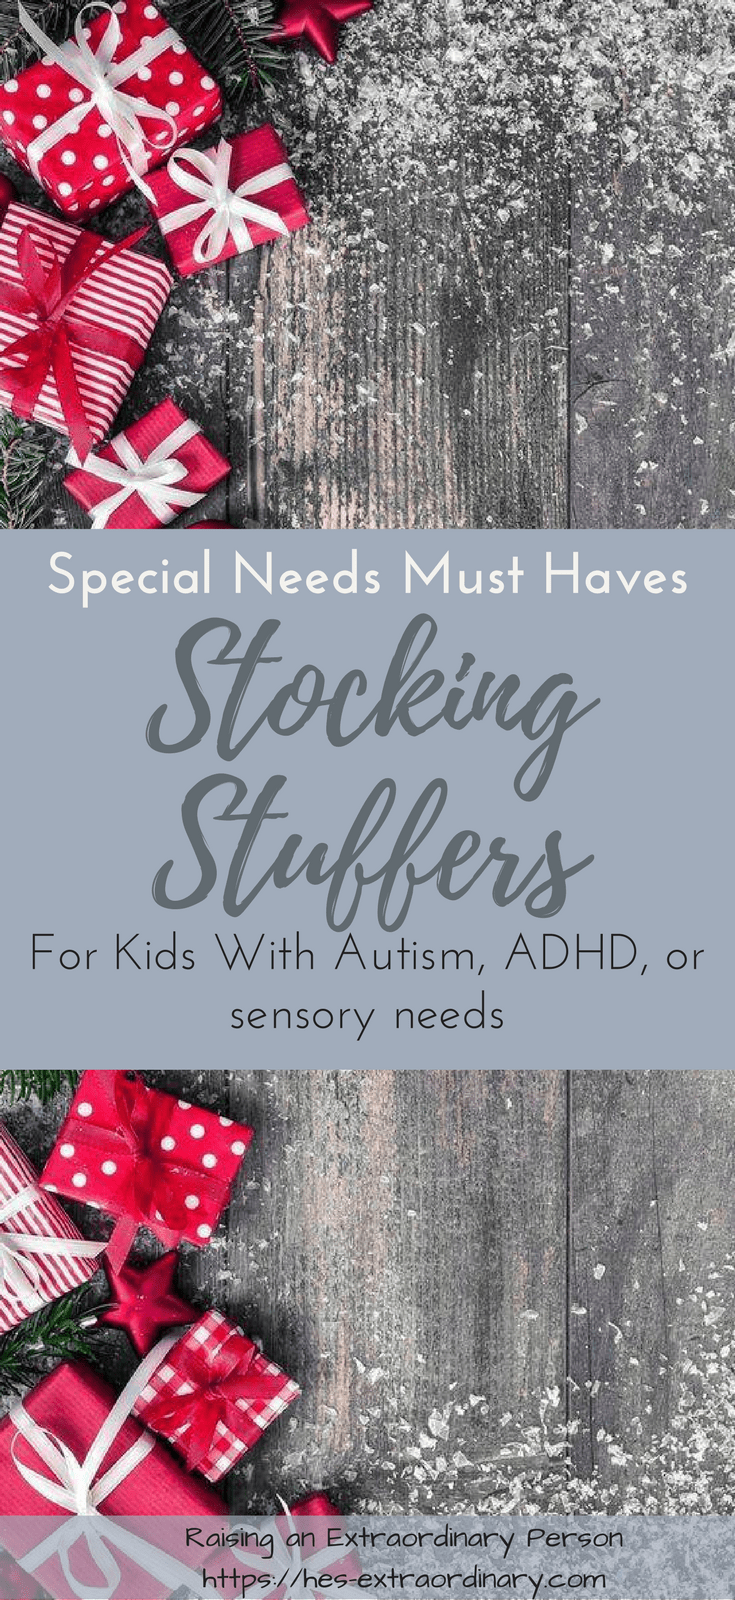 stocking stuffers for kids with autism